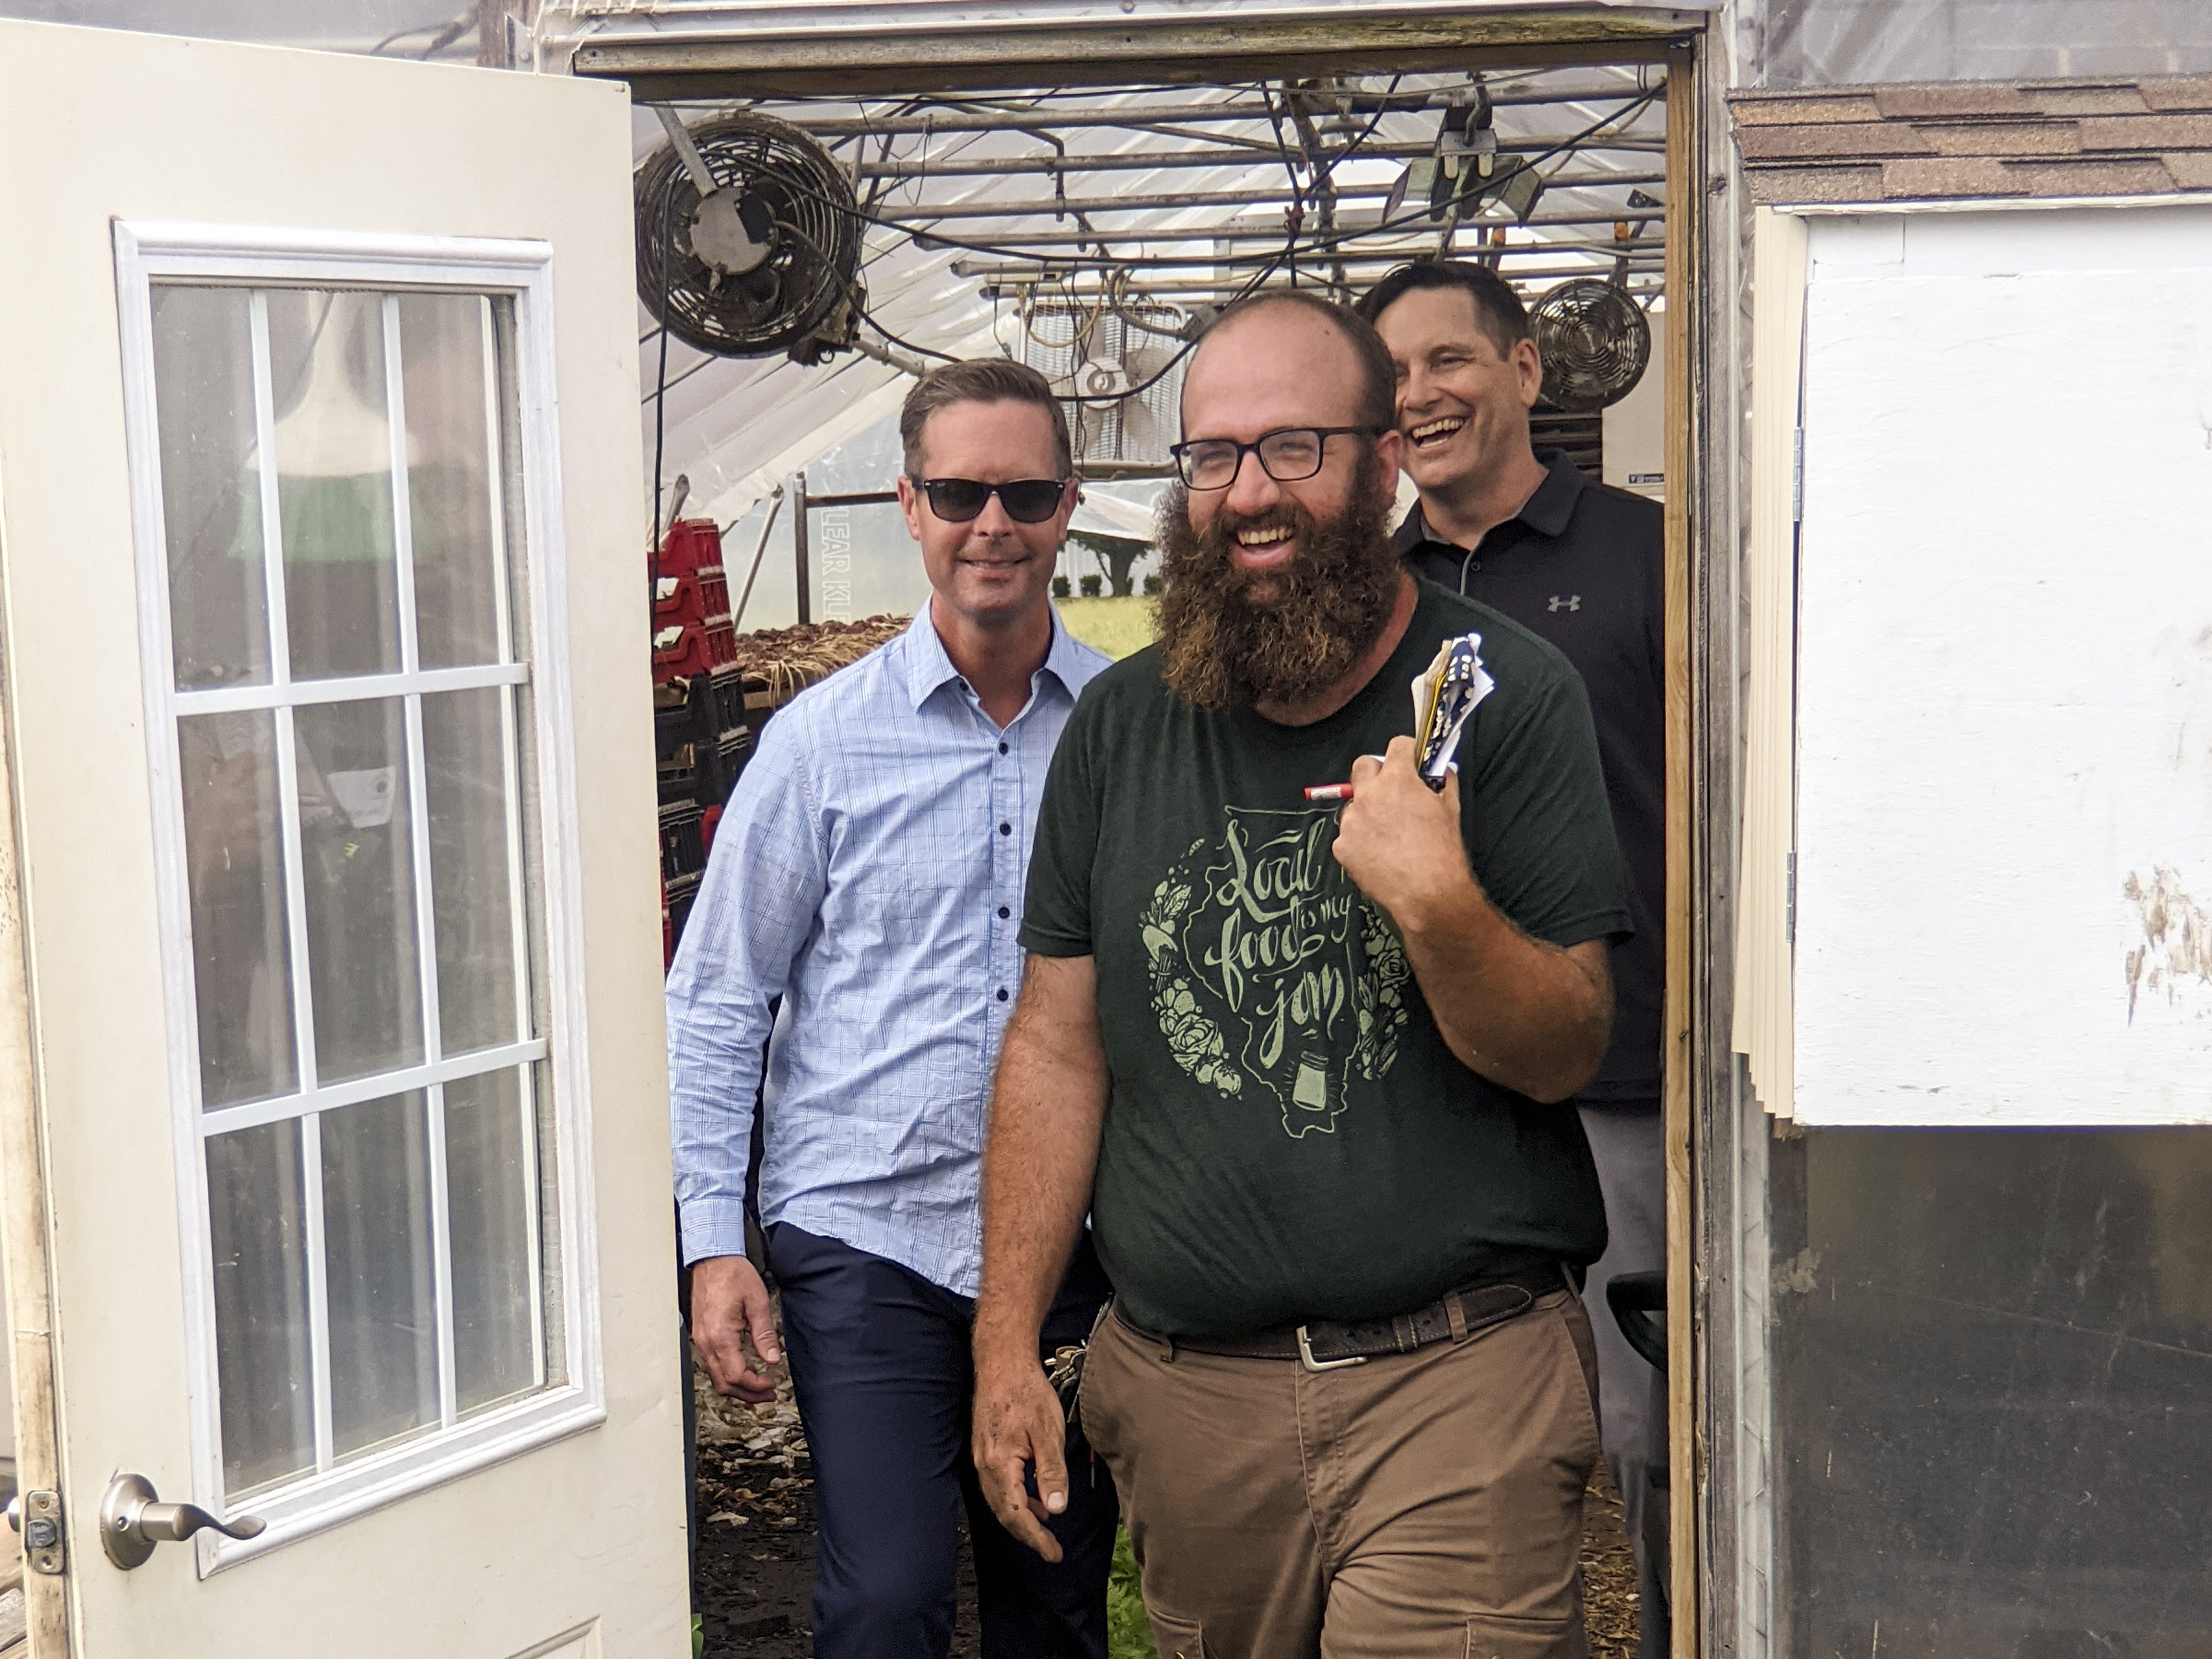 Congressman Rep. Rodney Davis, State Rep. Tim Butler and John Williams, farm manager of Sola Gratia exit a green house smiling and laughing.